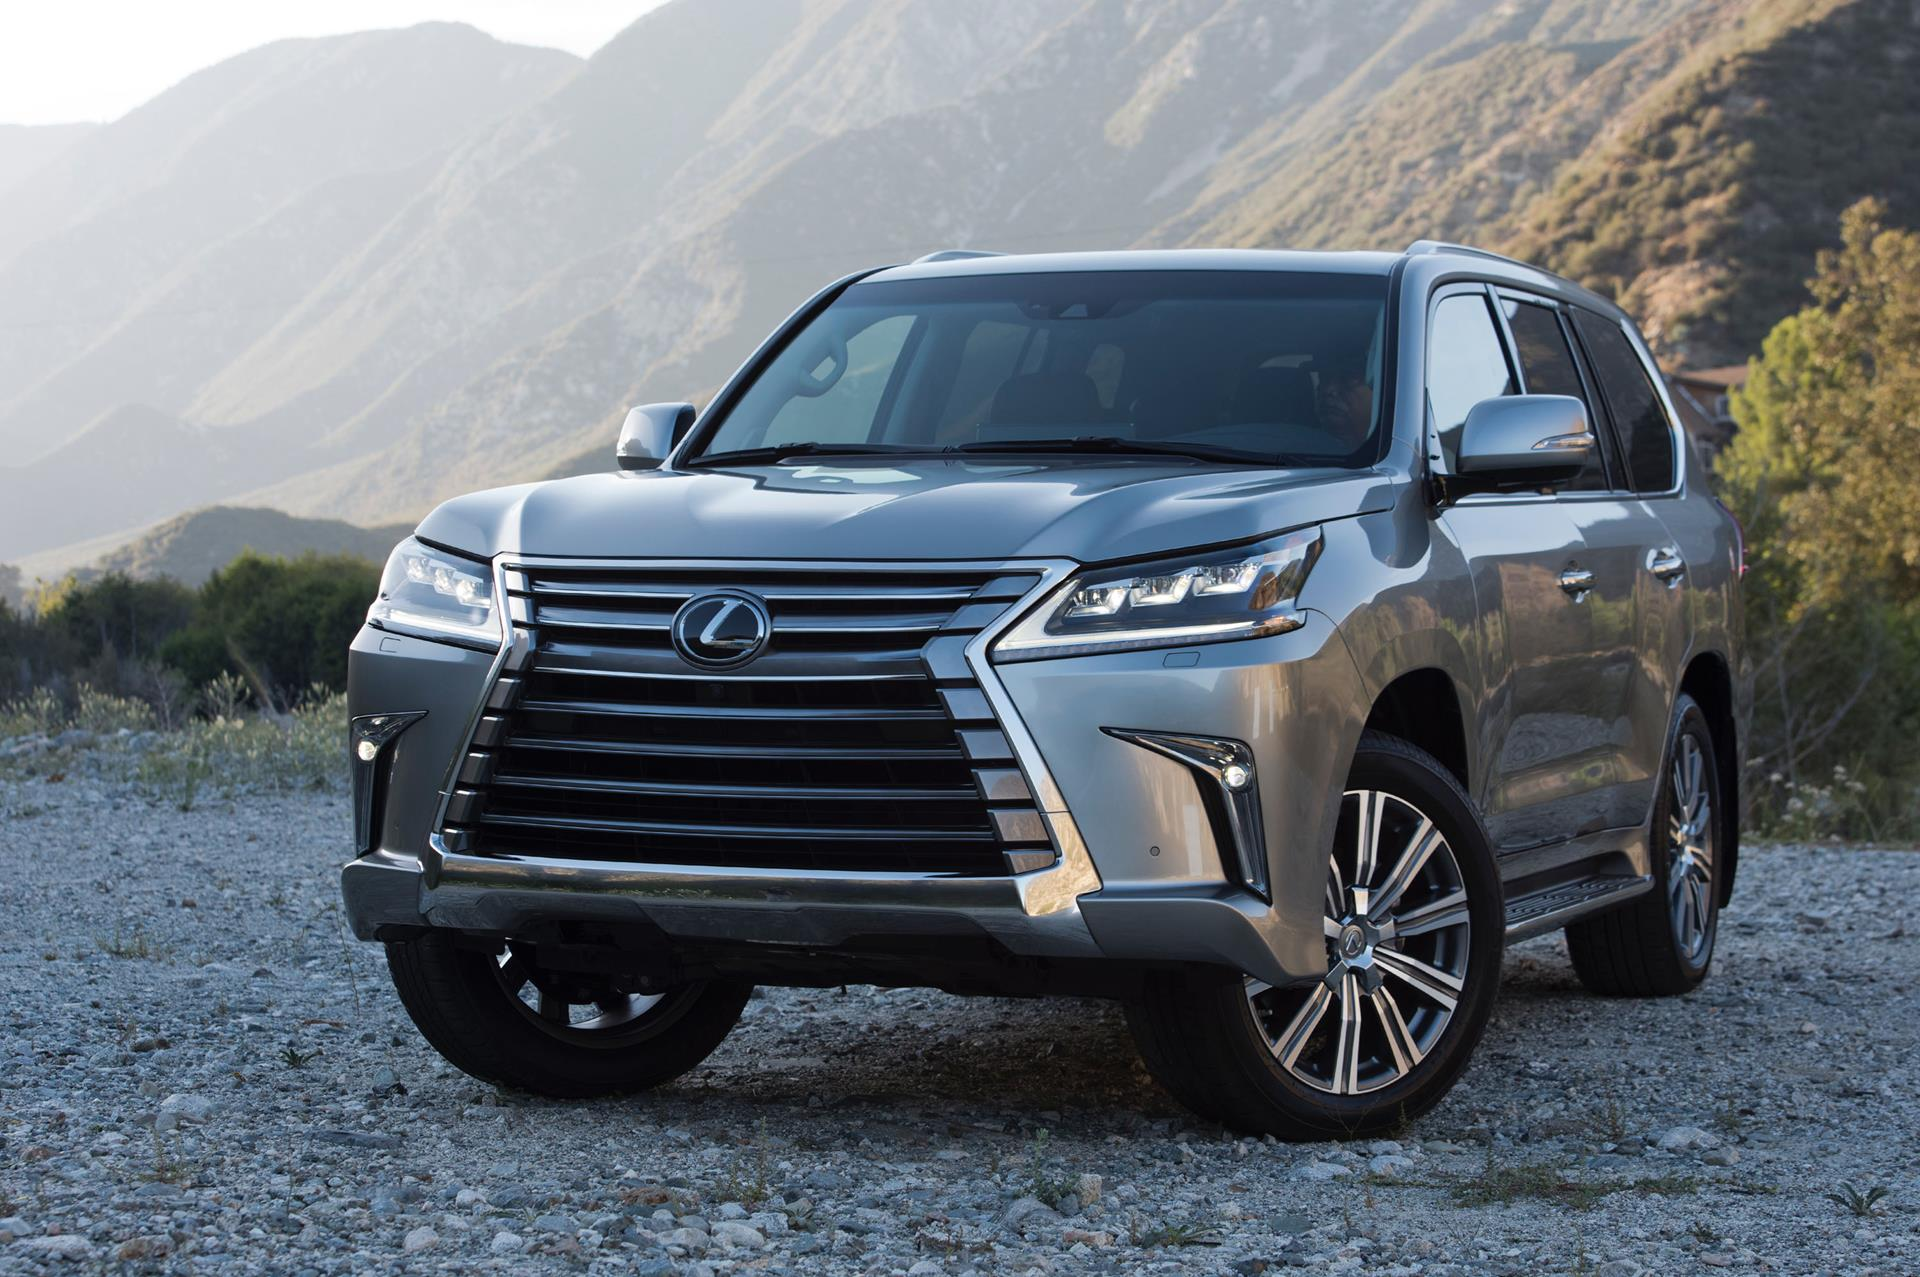 2016 Lexus LX 570 News and Information